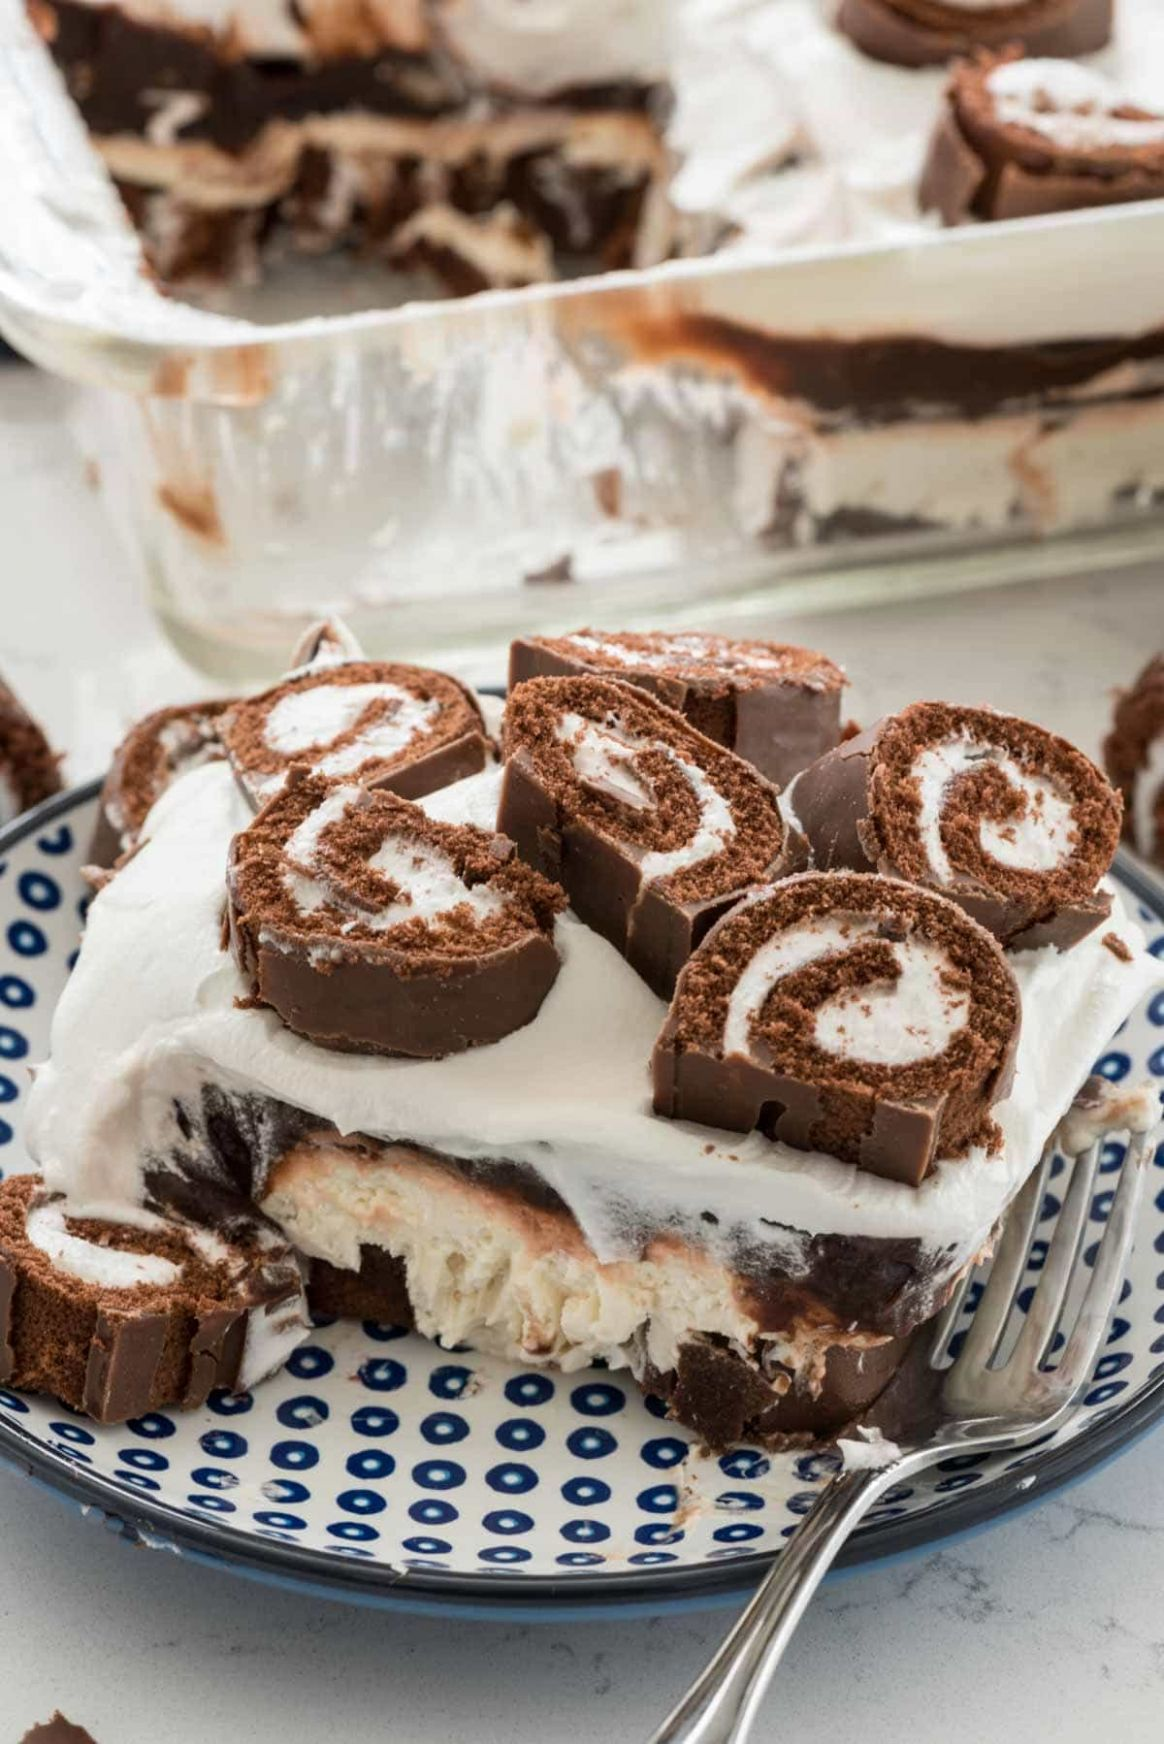 Swiss Roll Layered No Bake Dessert